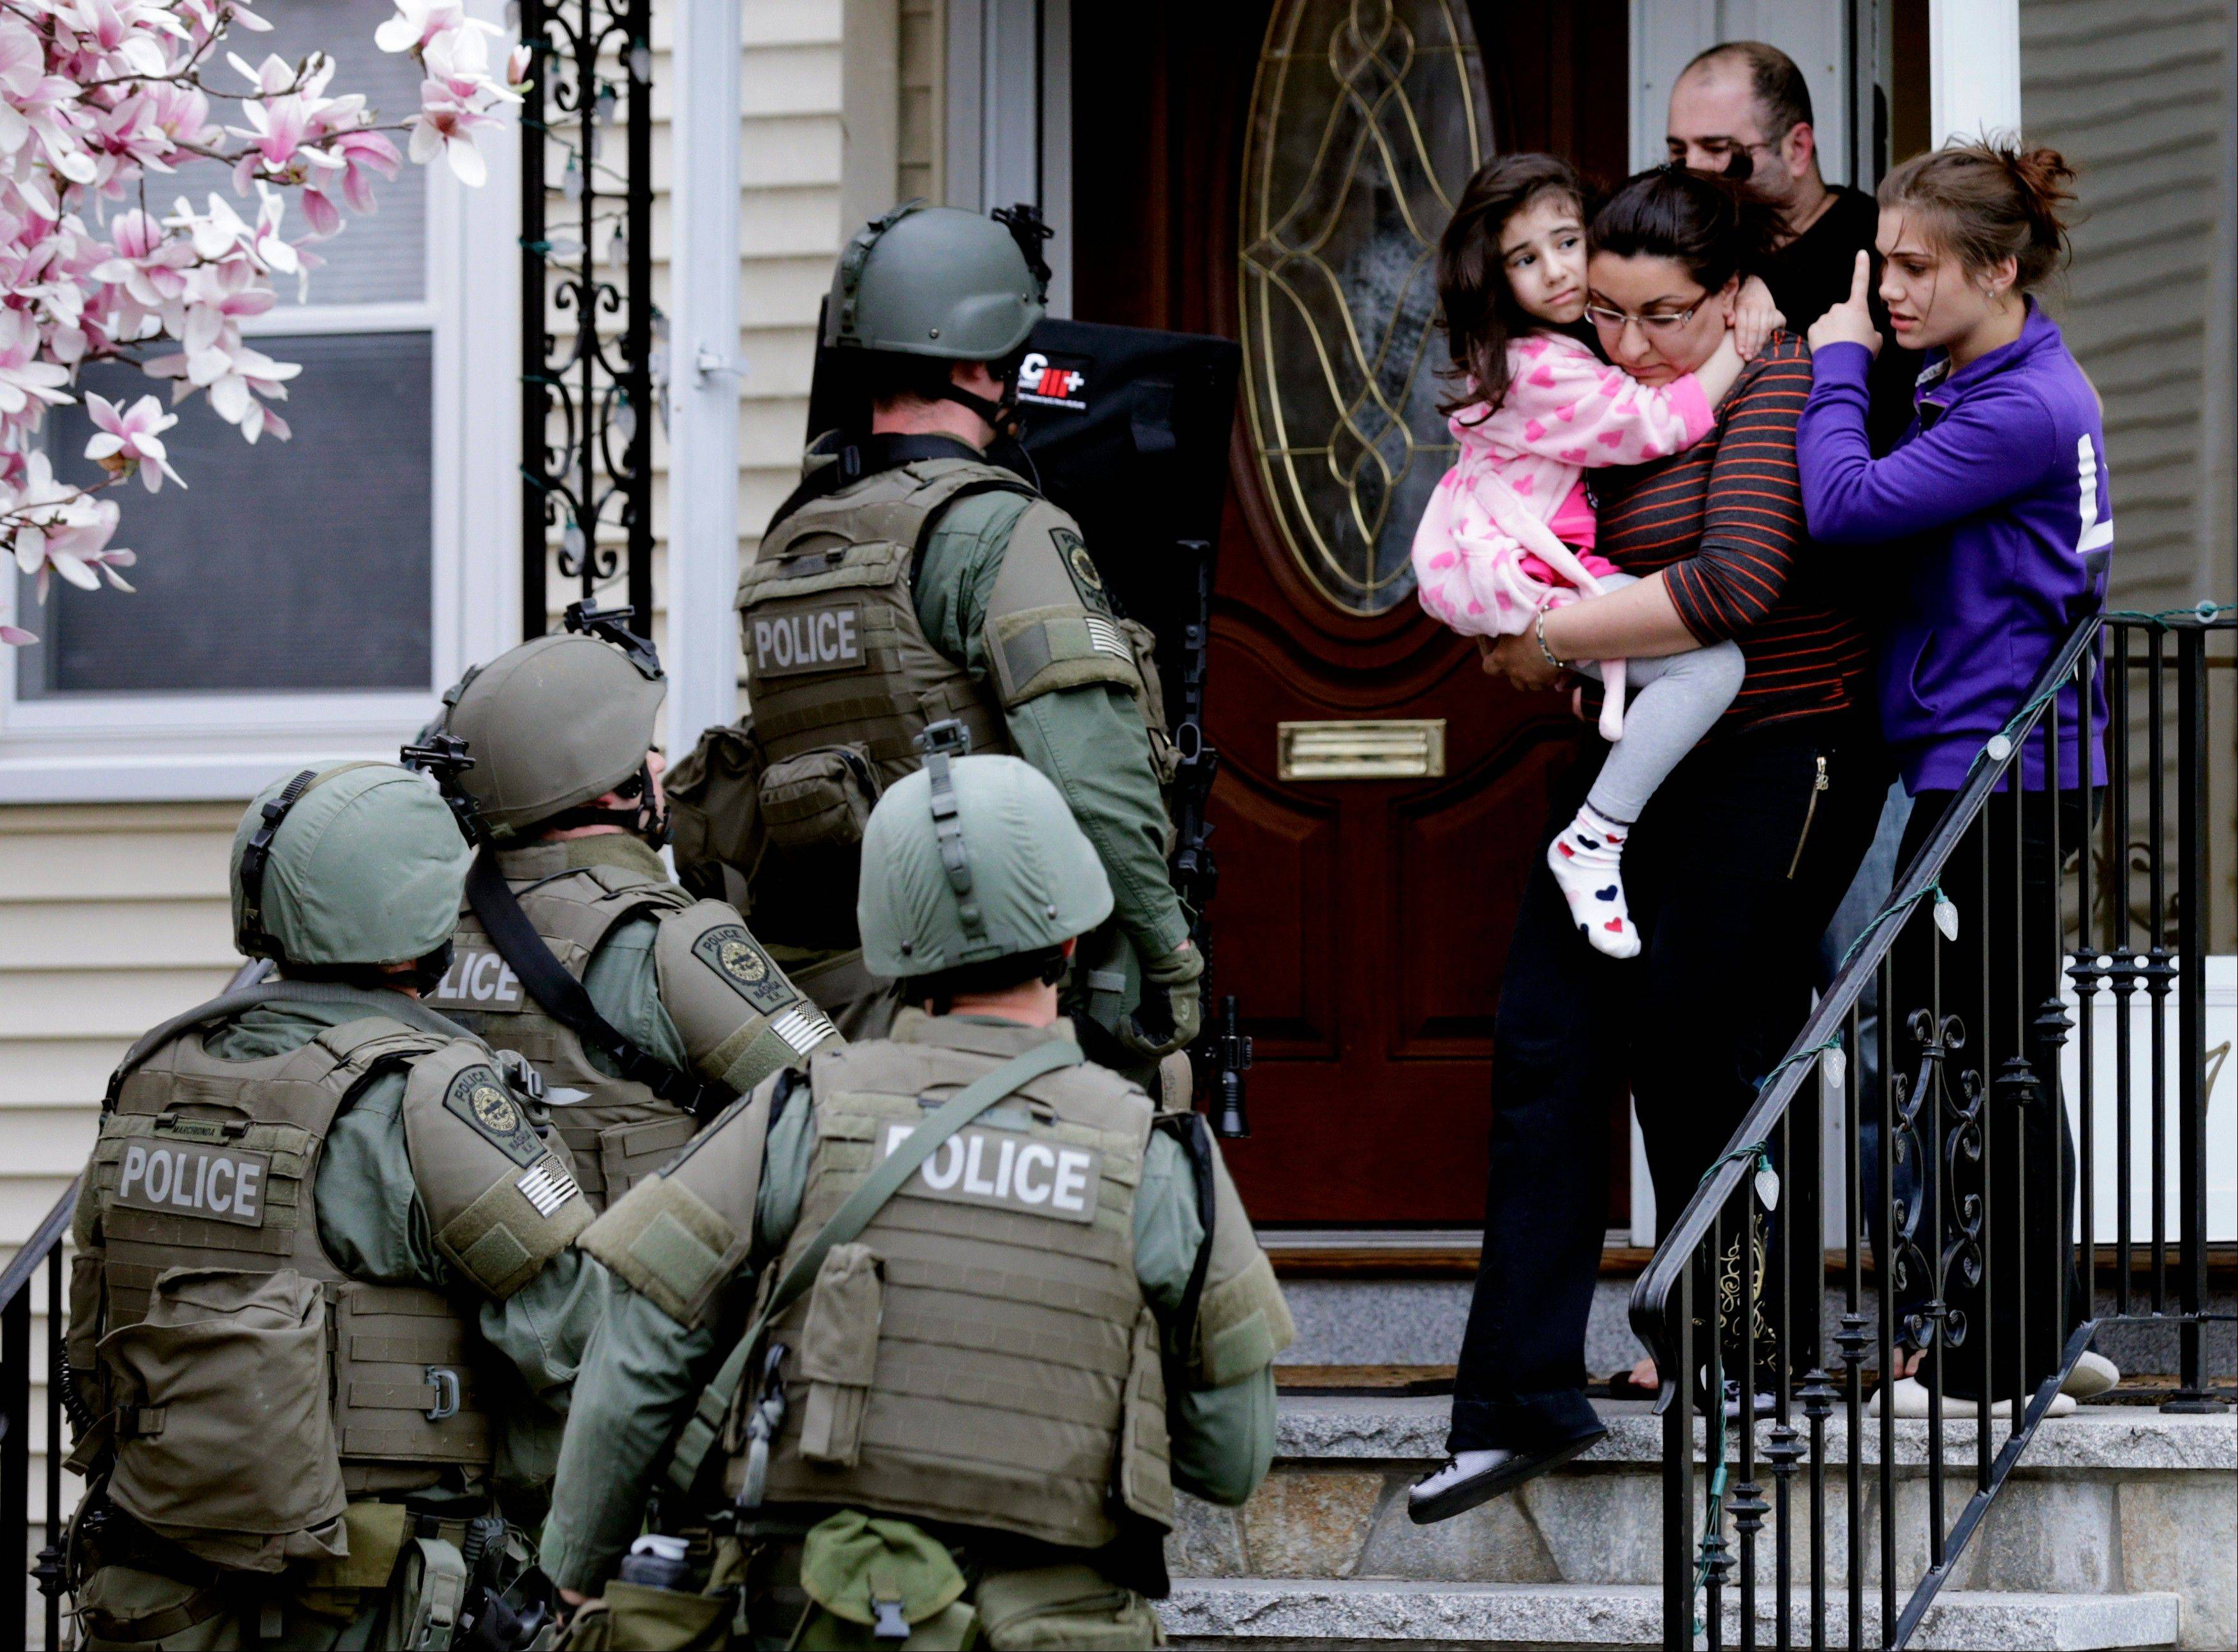 A woman carries a girl from their home as a SWAT team searching for a suspect in the Boston Marathon bombings enters the building Friday in Watertown, Mass.